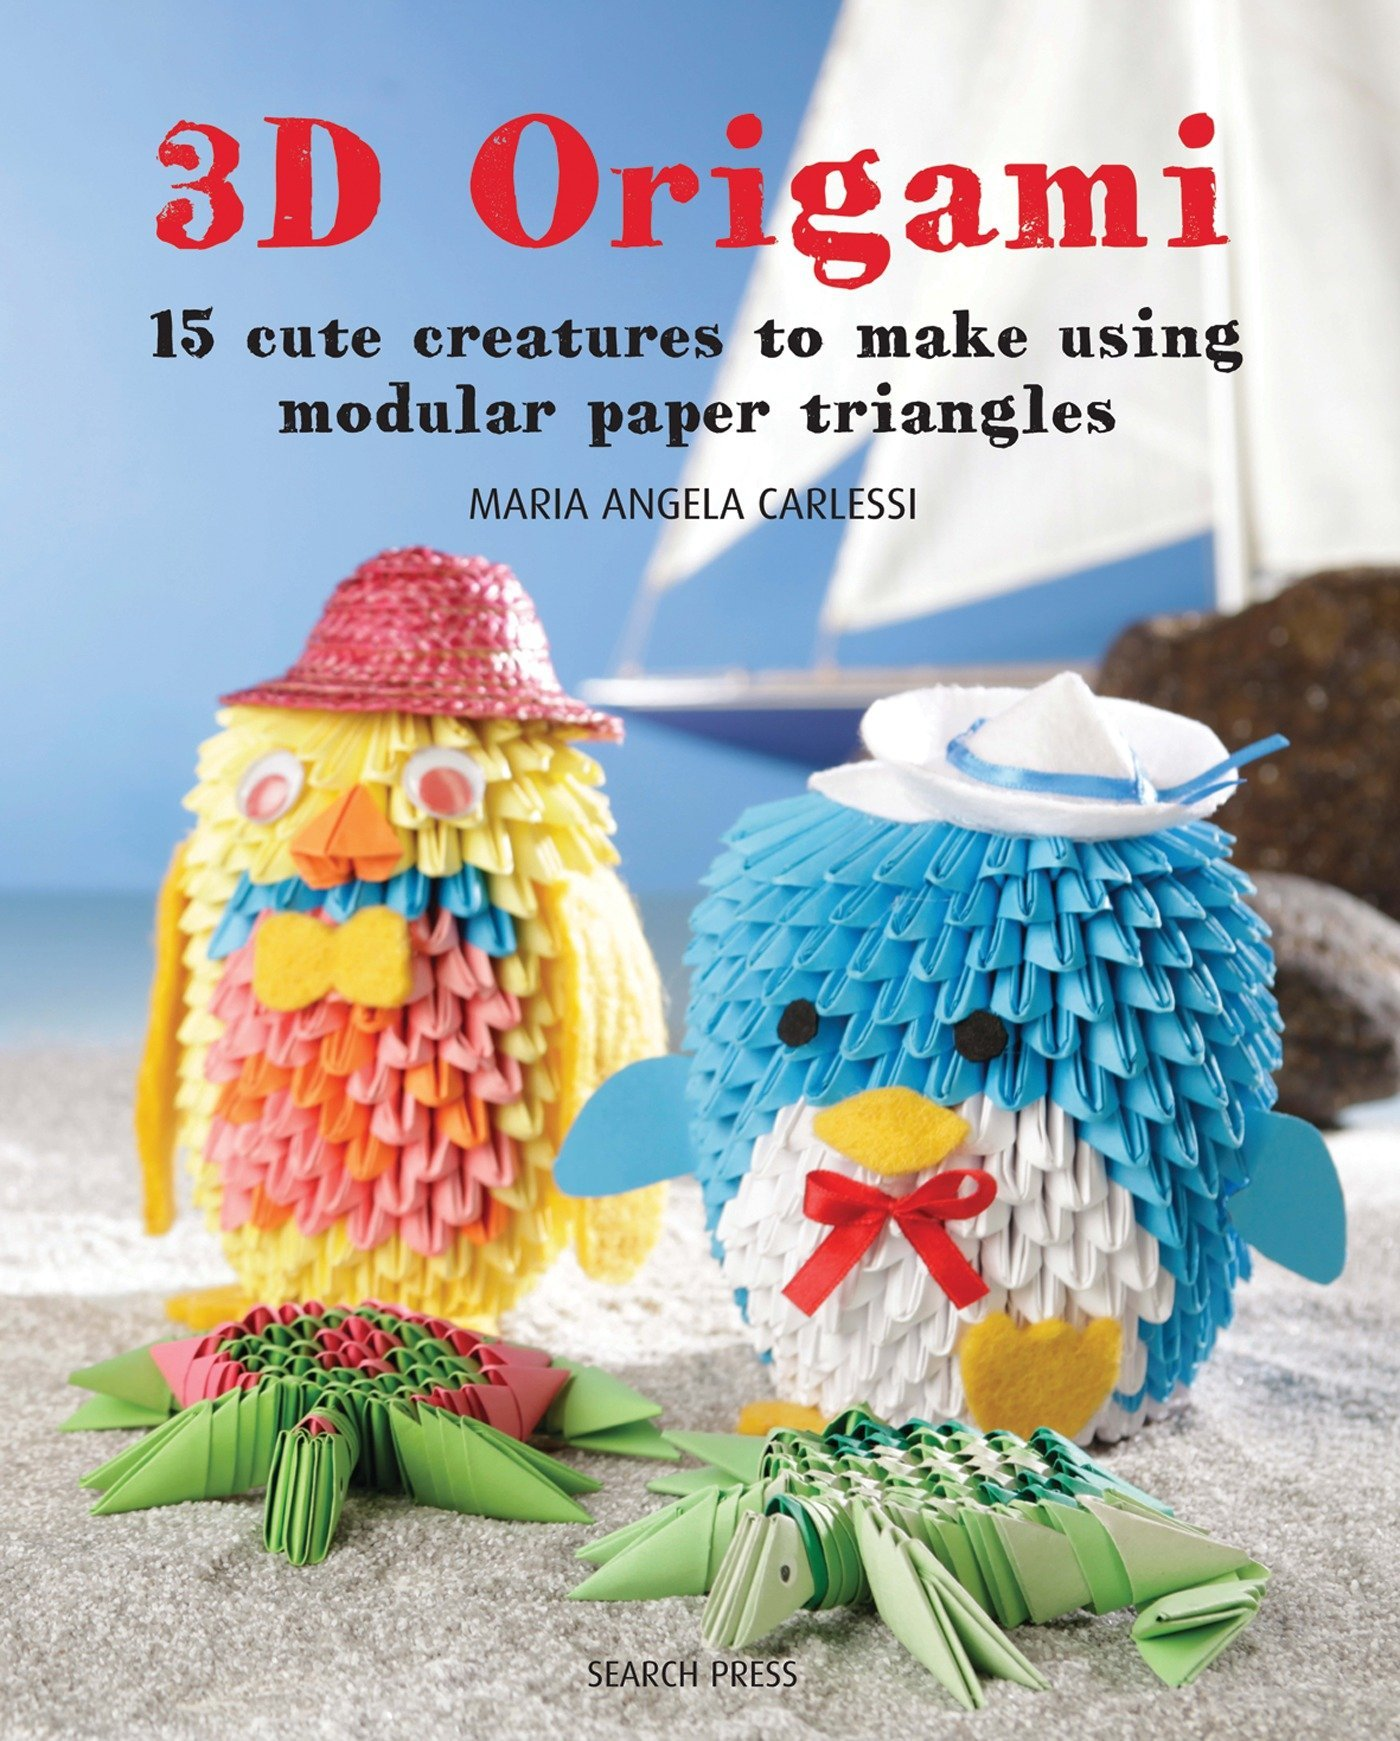 How to make 3D origami bird flamingo master class (tutorial) i use ... | 1741x1400